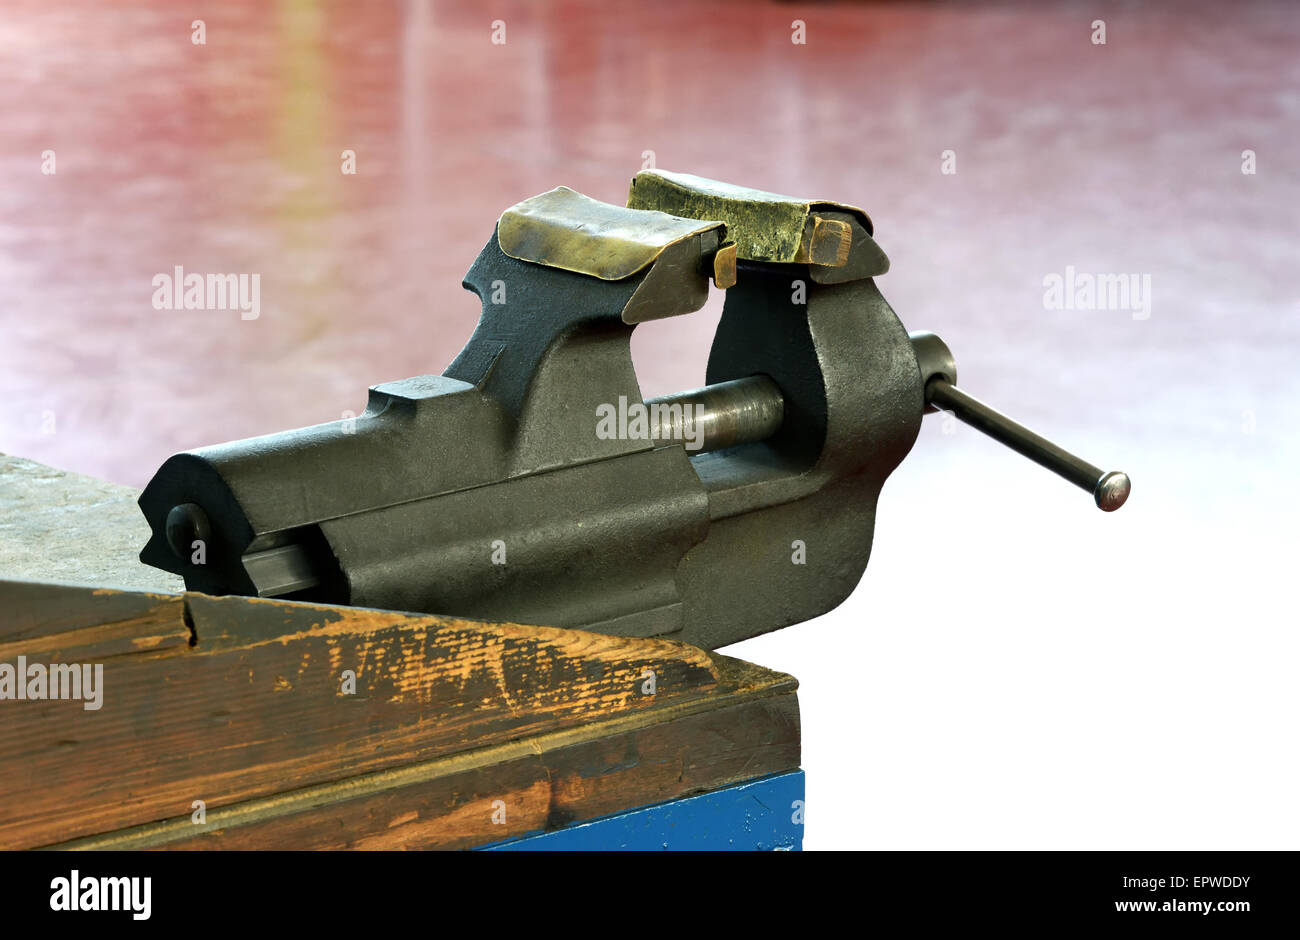 Steel vice mounted on a wooden workbench with metal jaws - Stock Image